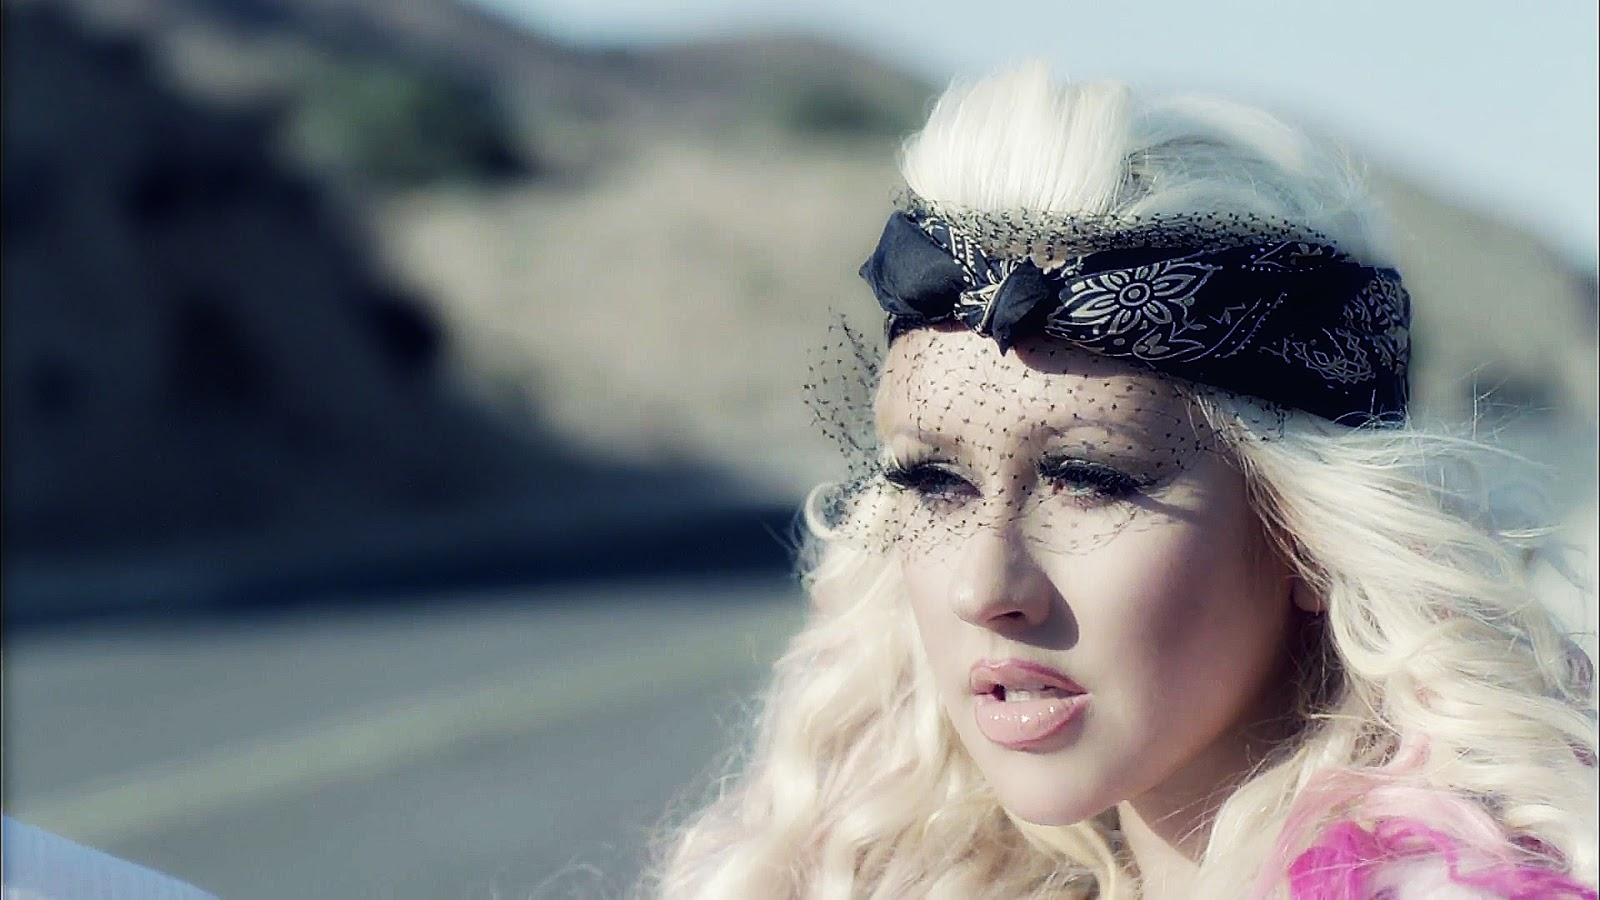 http://3.bp.blogspot.com/-3bVk50ipmYc/UJ7549FGcsI/AAAAAAAAASk/sxs9J_nKQN8/s1600/Christina-Aguilera-Your-Body-video-christina-aguilera-32338608-1920-1080.jpg